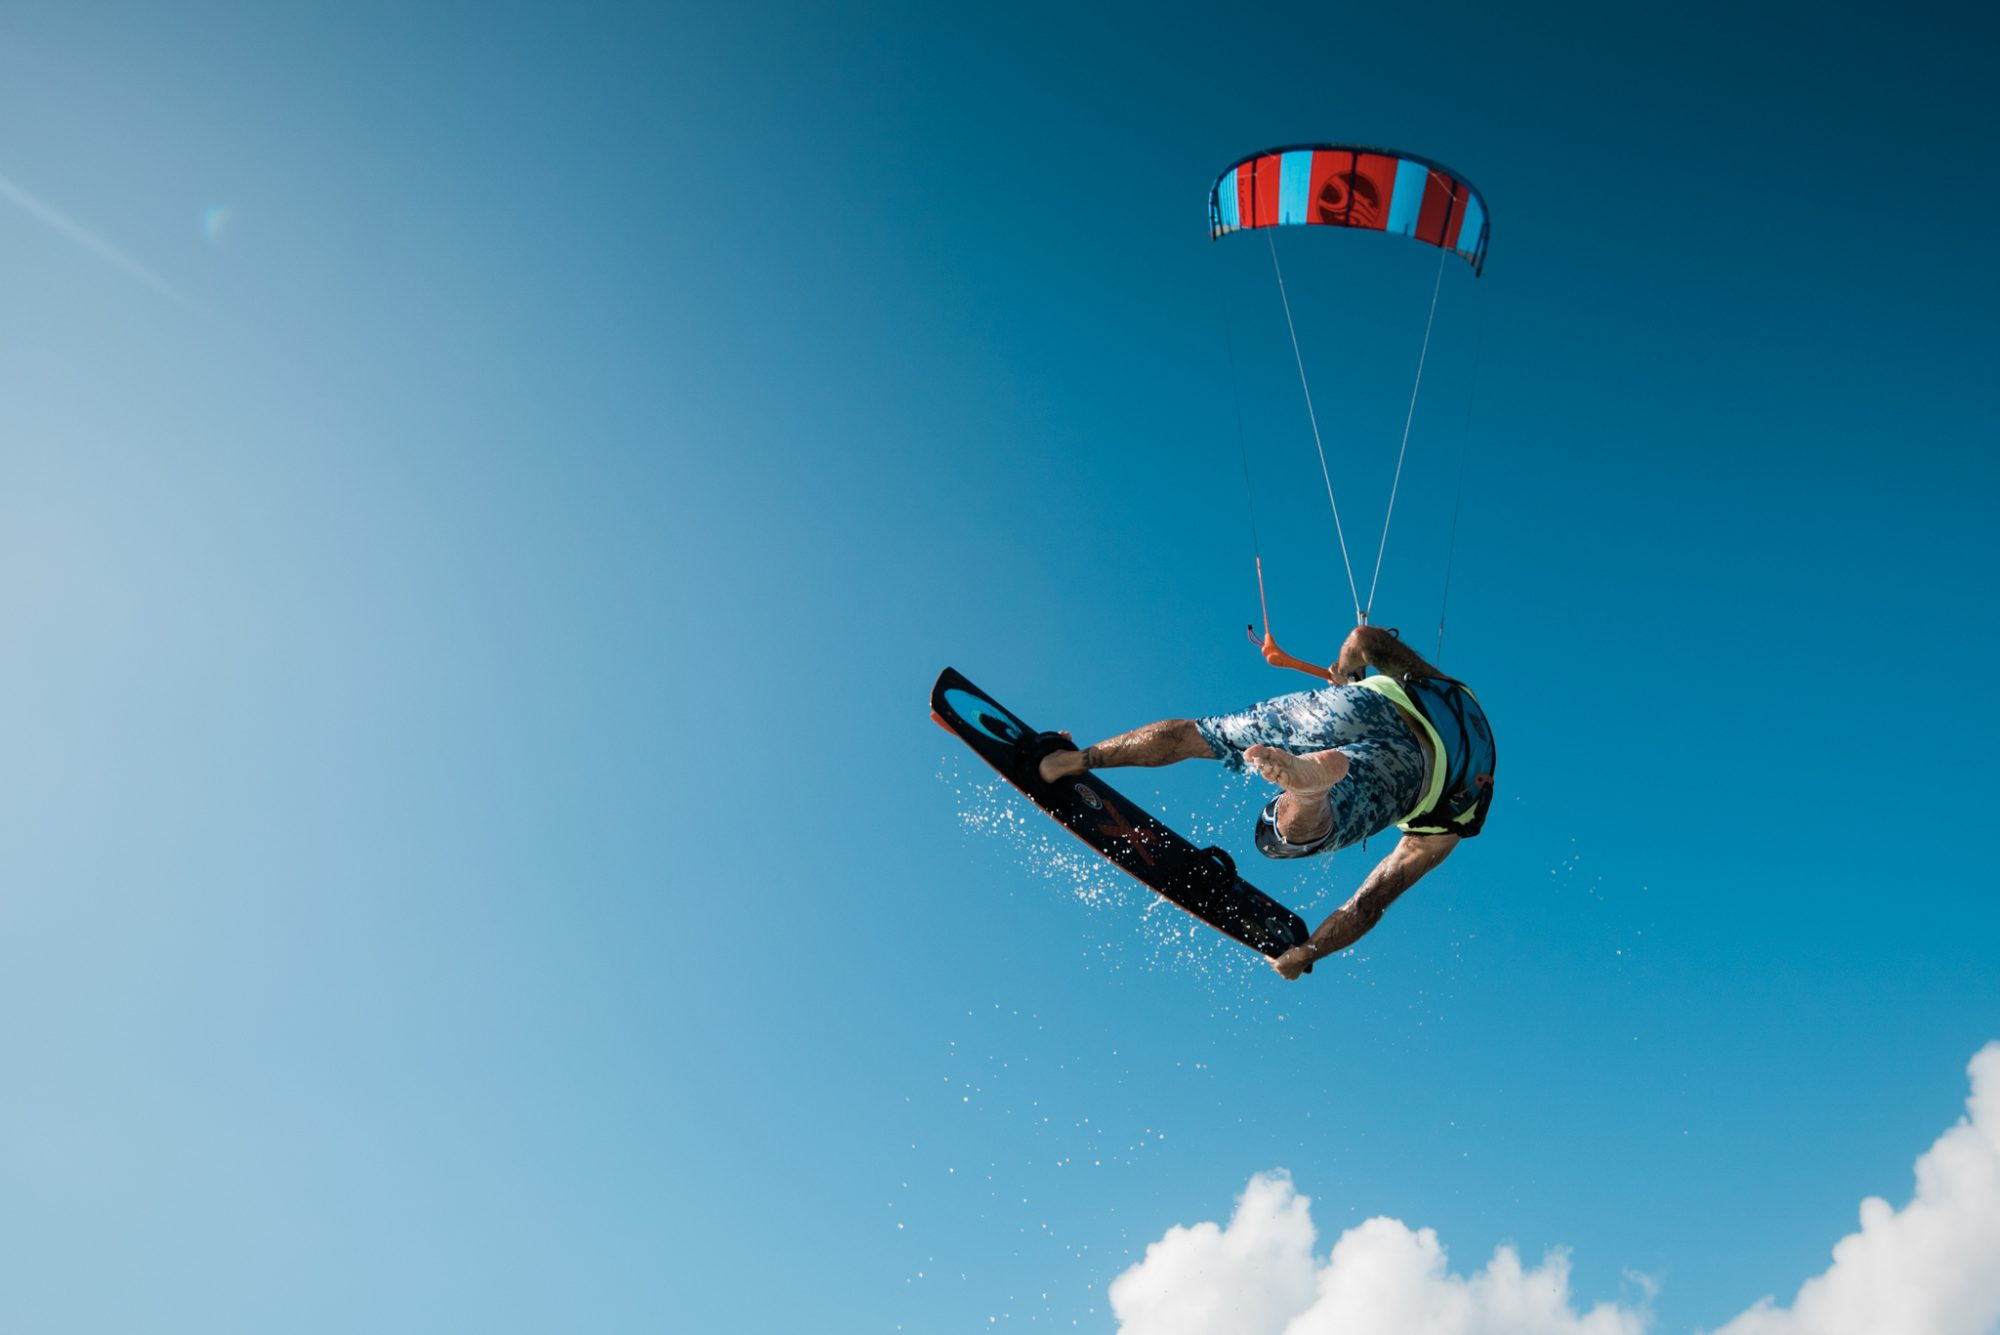 kiting-in-key-west-photos-1-6